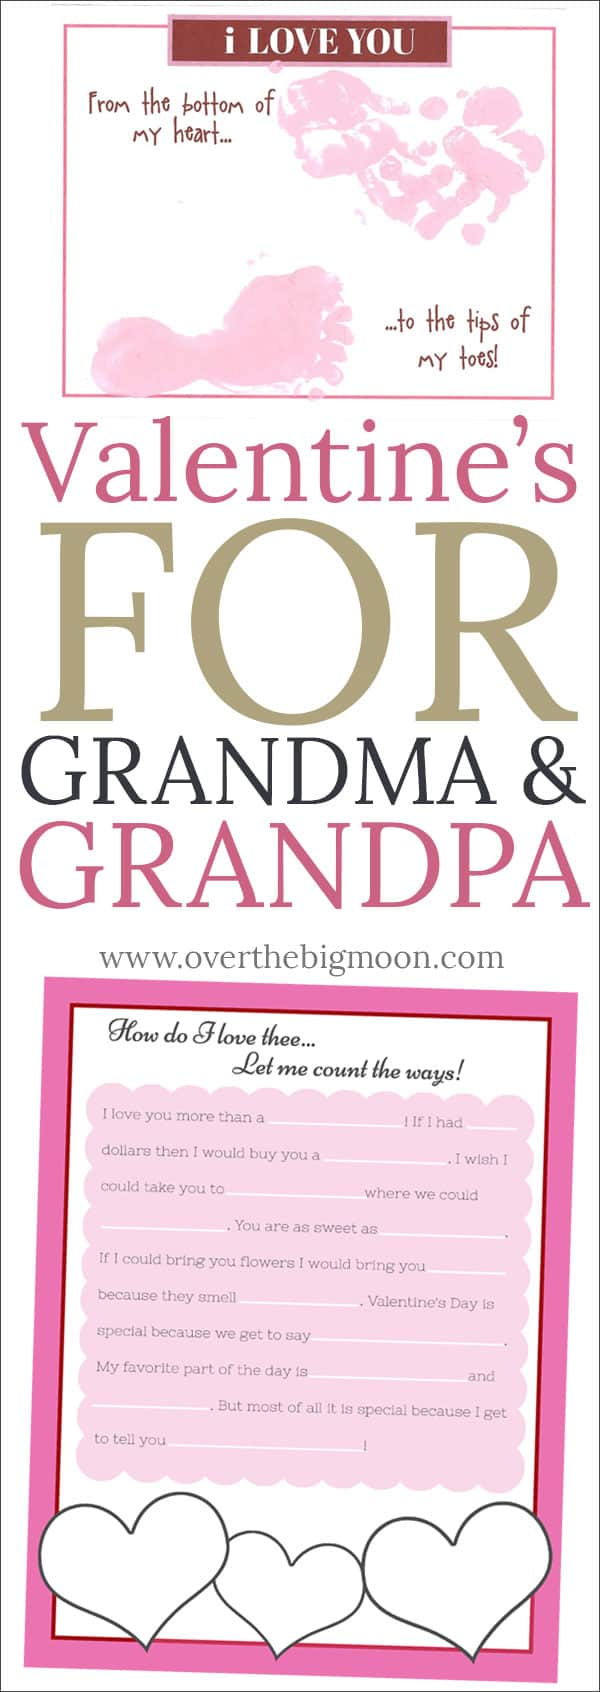 Valentine's Printables for the Grandparents! Let's not forget about Grandma and Grandpa this Valentine's Day! From overthebigmoon.com!